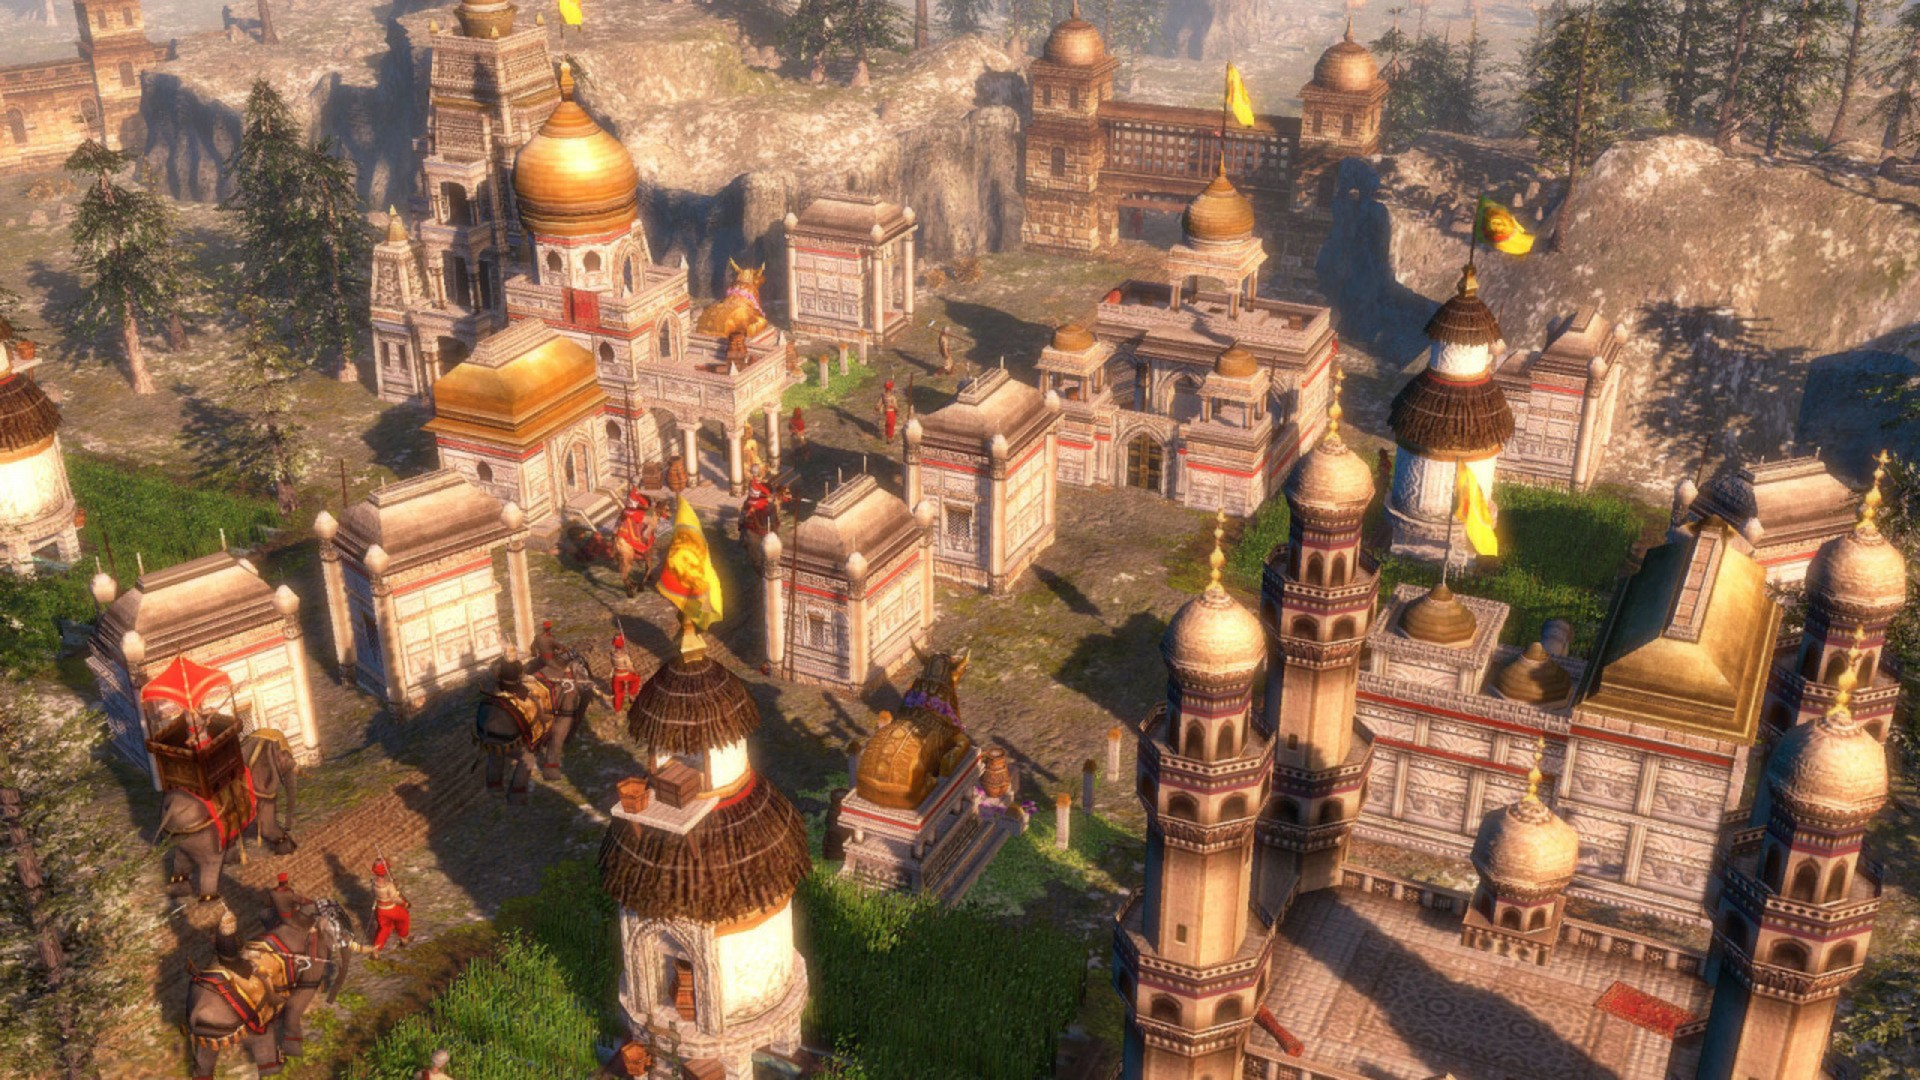 High Resolution Wallpaper | Age Of Empires III 1920x1080 px